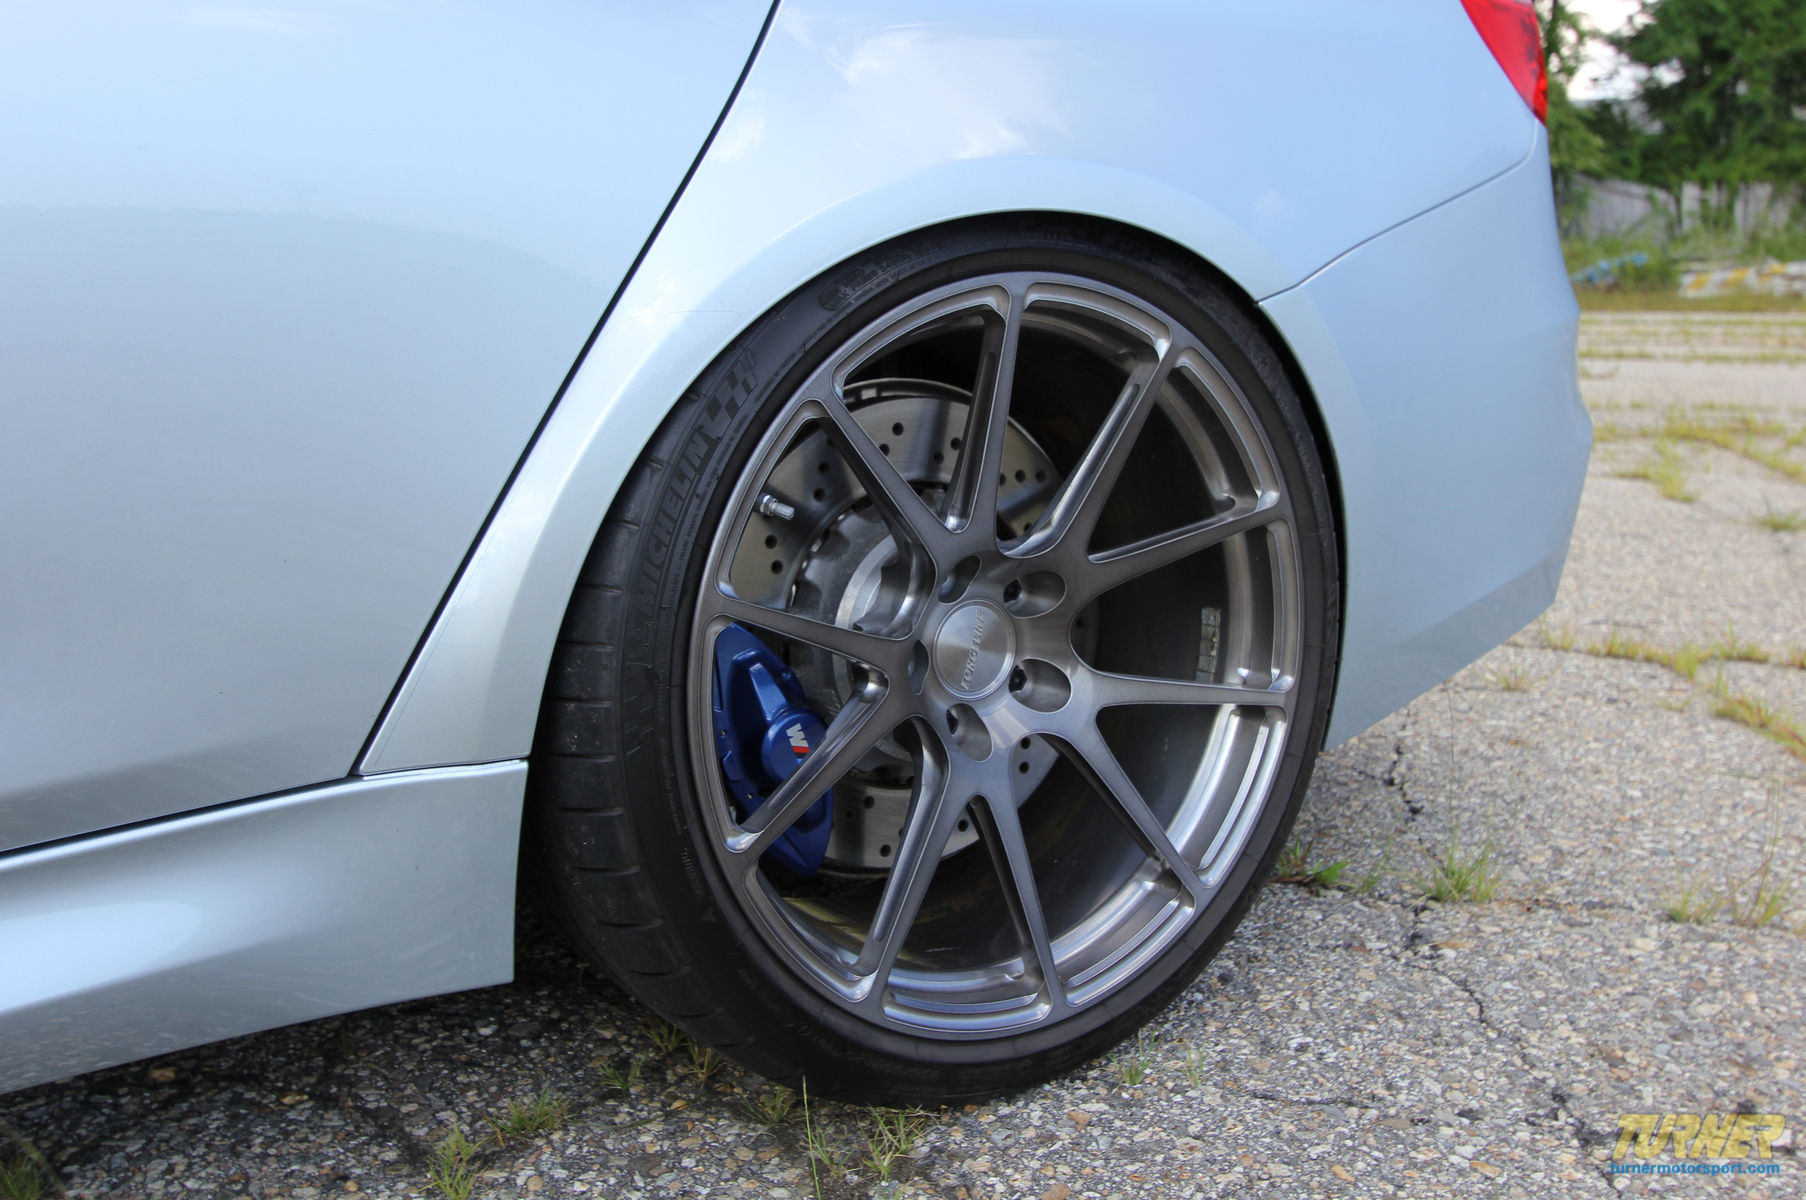 2015 BMW M3 | Silverstone BMW F80 M3 on Forgeline GA1R Deep Cap Wheels